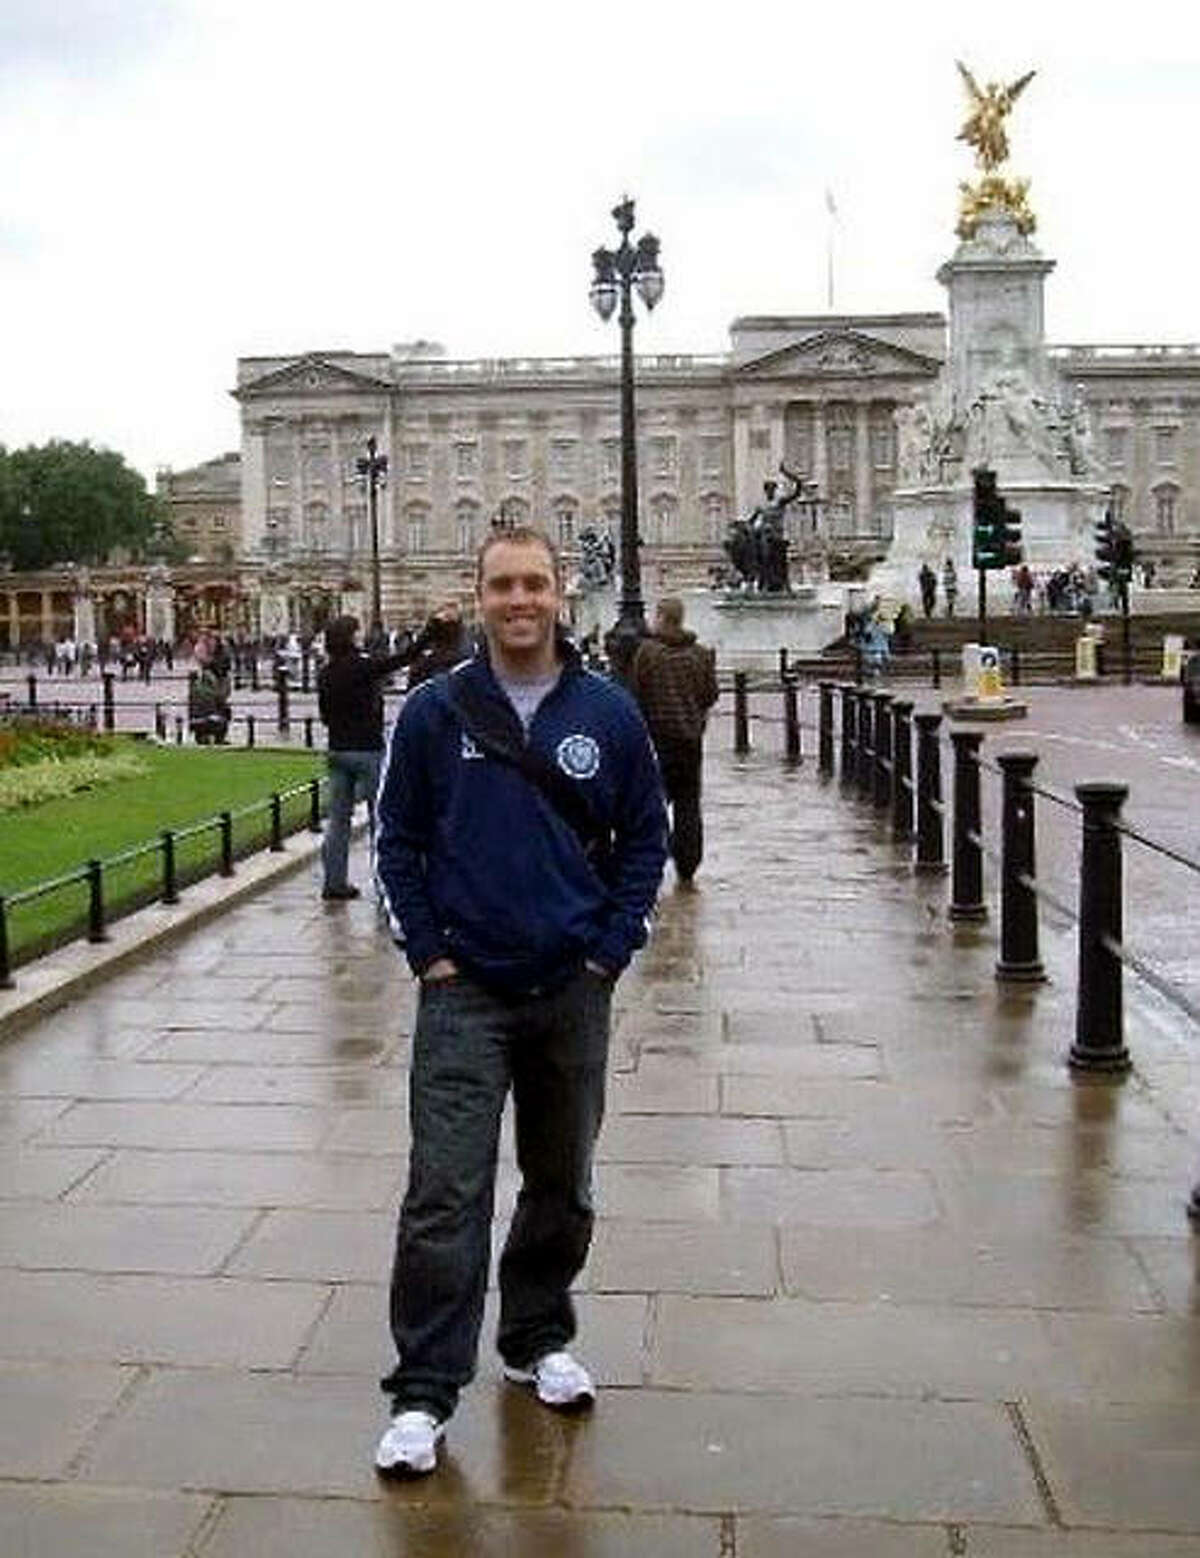 Jesse Daniels, the new EA-WR girls soccer coach, in front of Buckingham Palace in London during his stint as a teacher in England following graduation from SIUE.